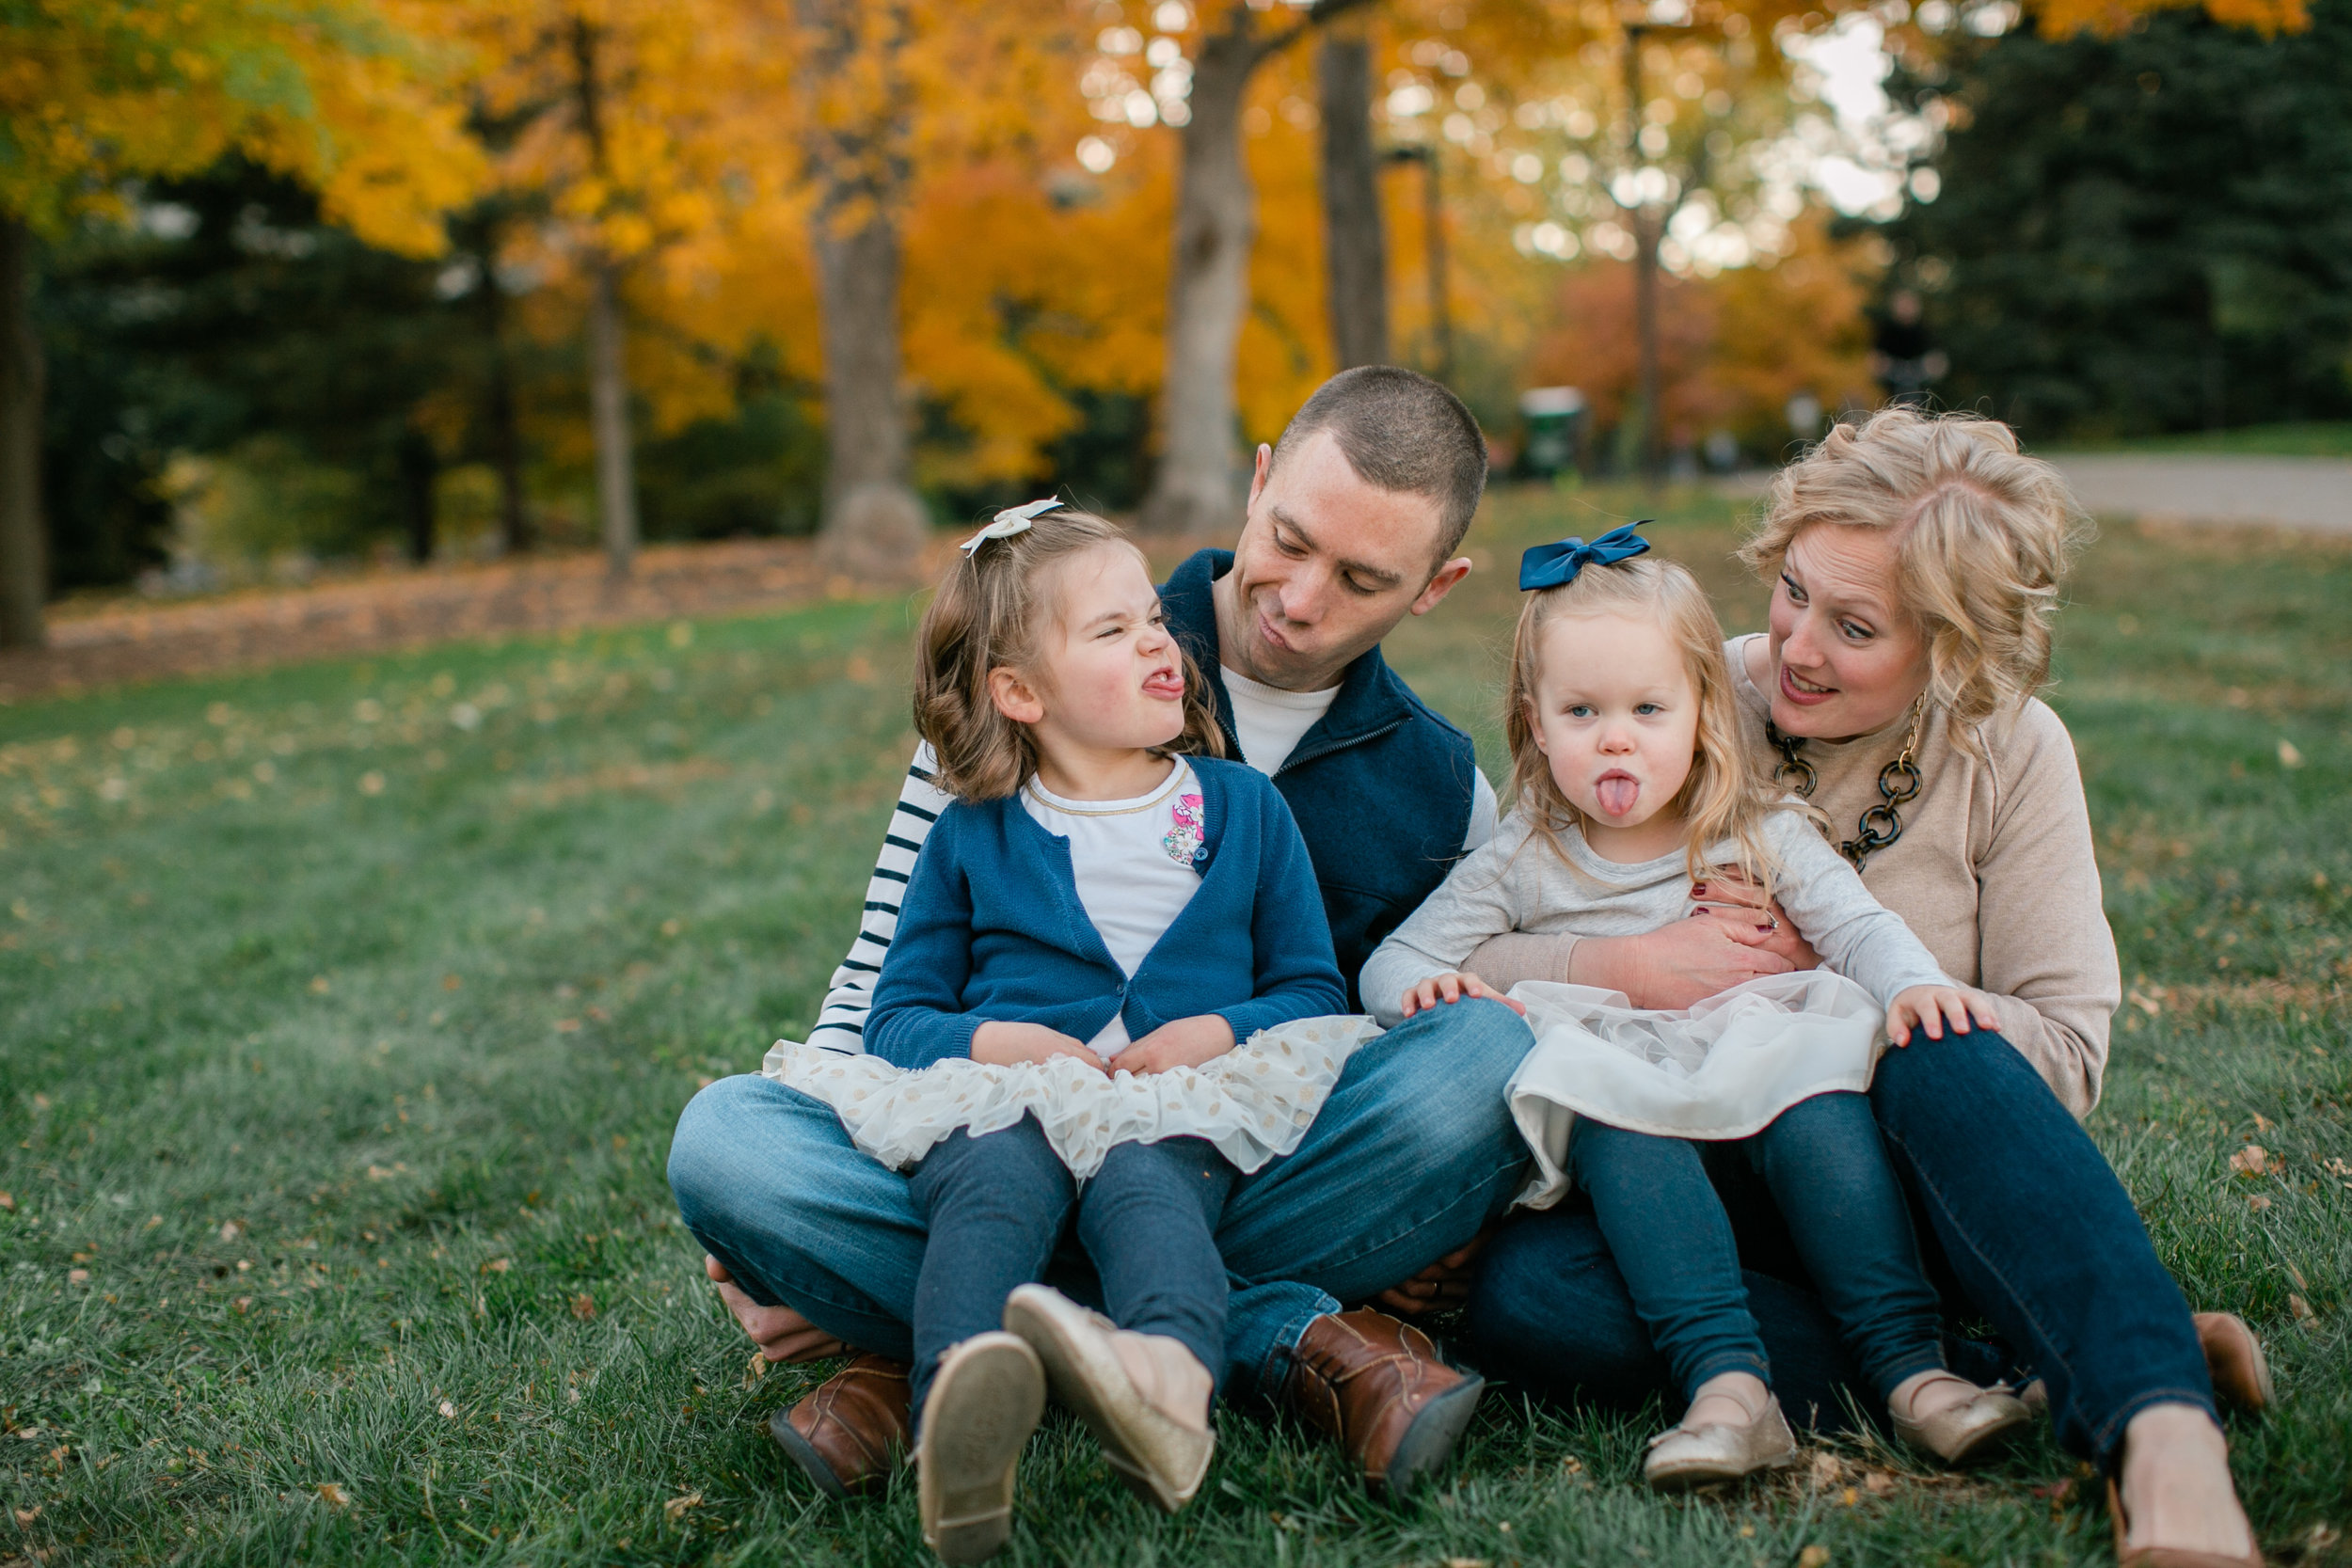 fun des moines iowa family photos with young kids